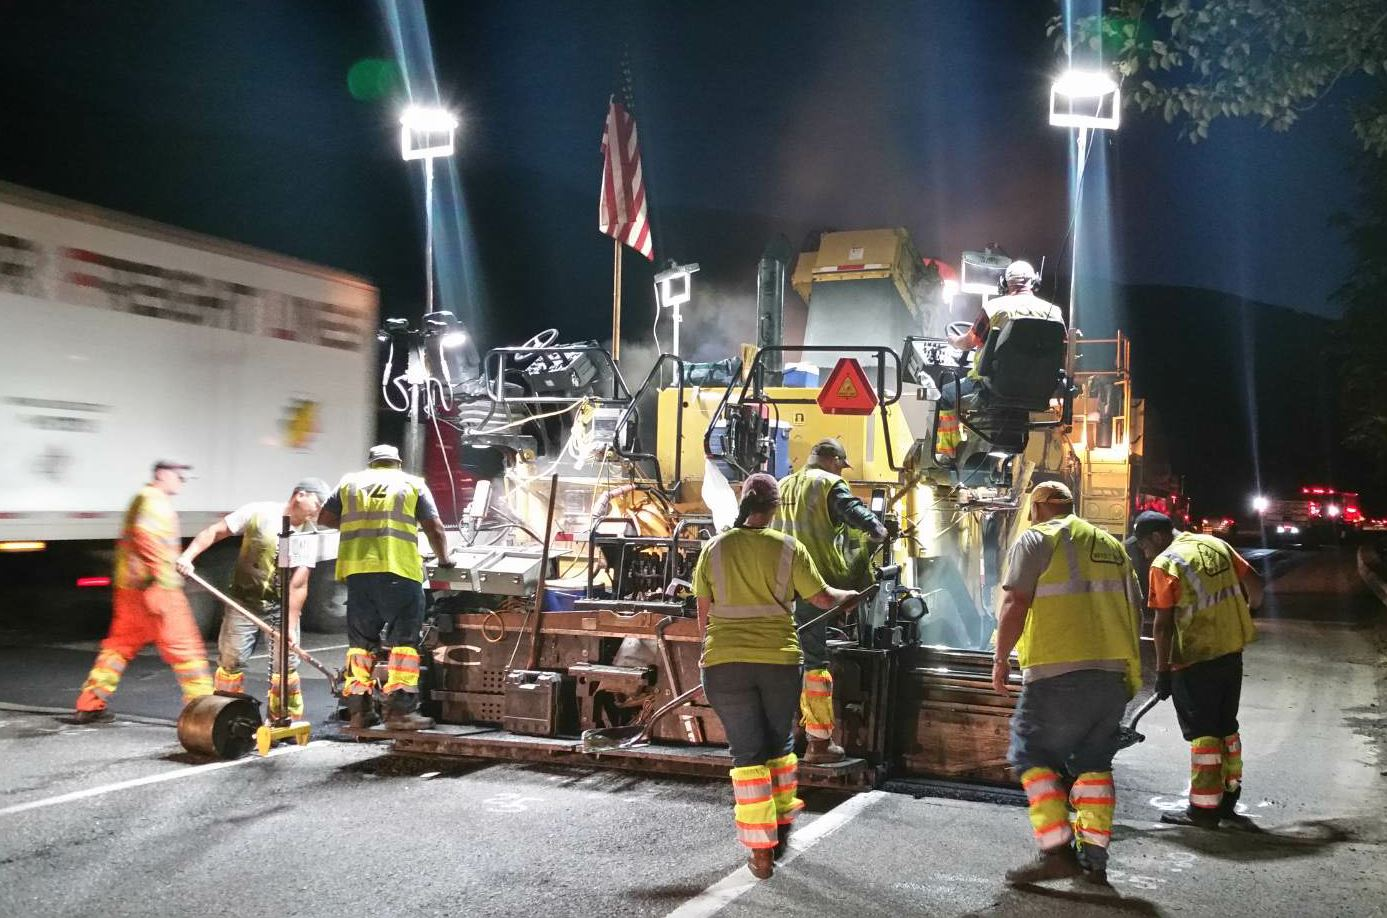 Getting down to business, the crews from Lakeside learn to be the best pavers they can be. Here a crew participates in night paving of westbound I-90. Check out the compaction wheel getting initial density as they build the joint.